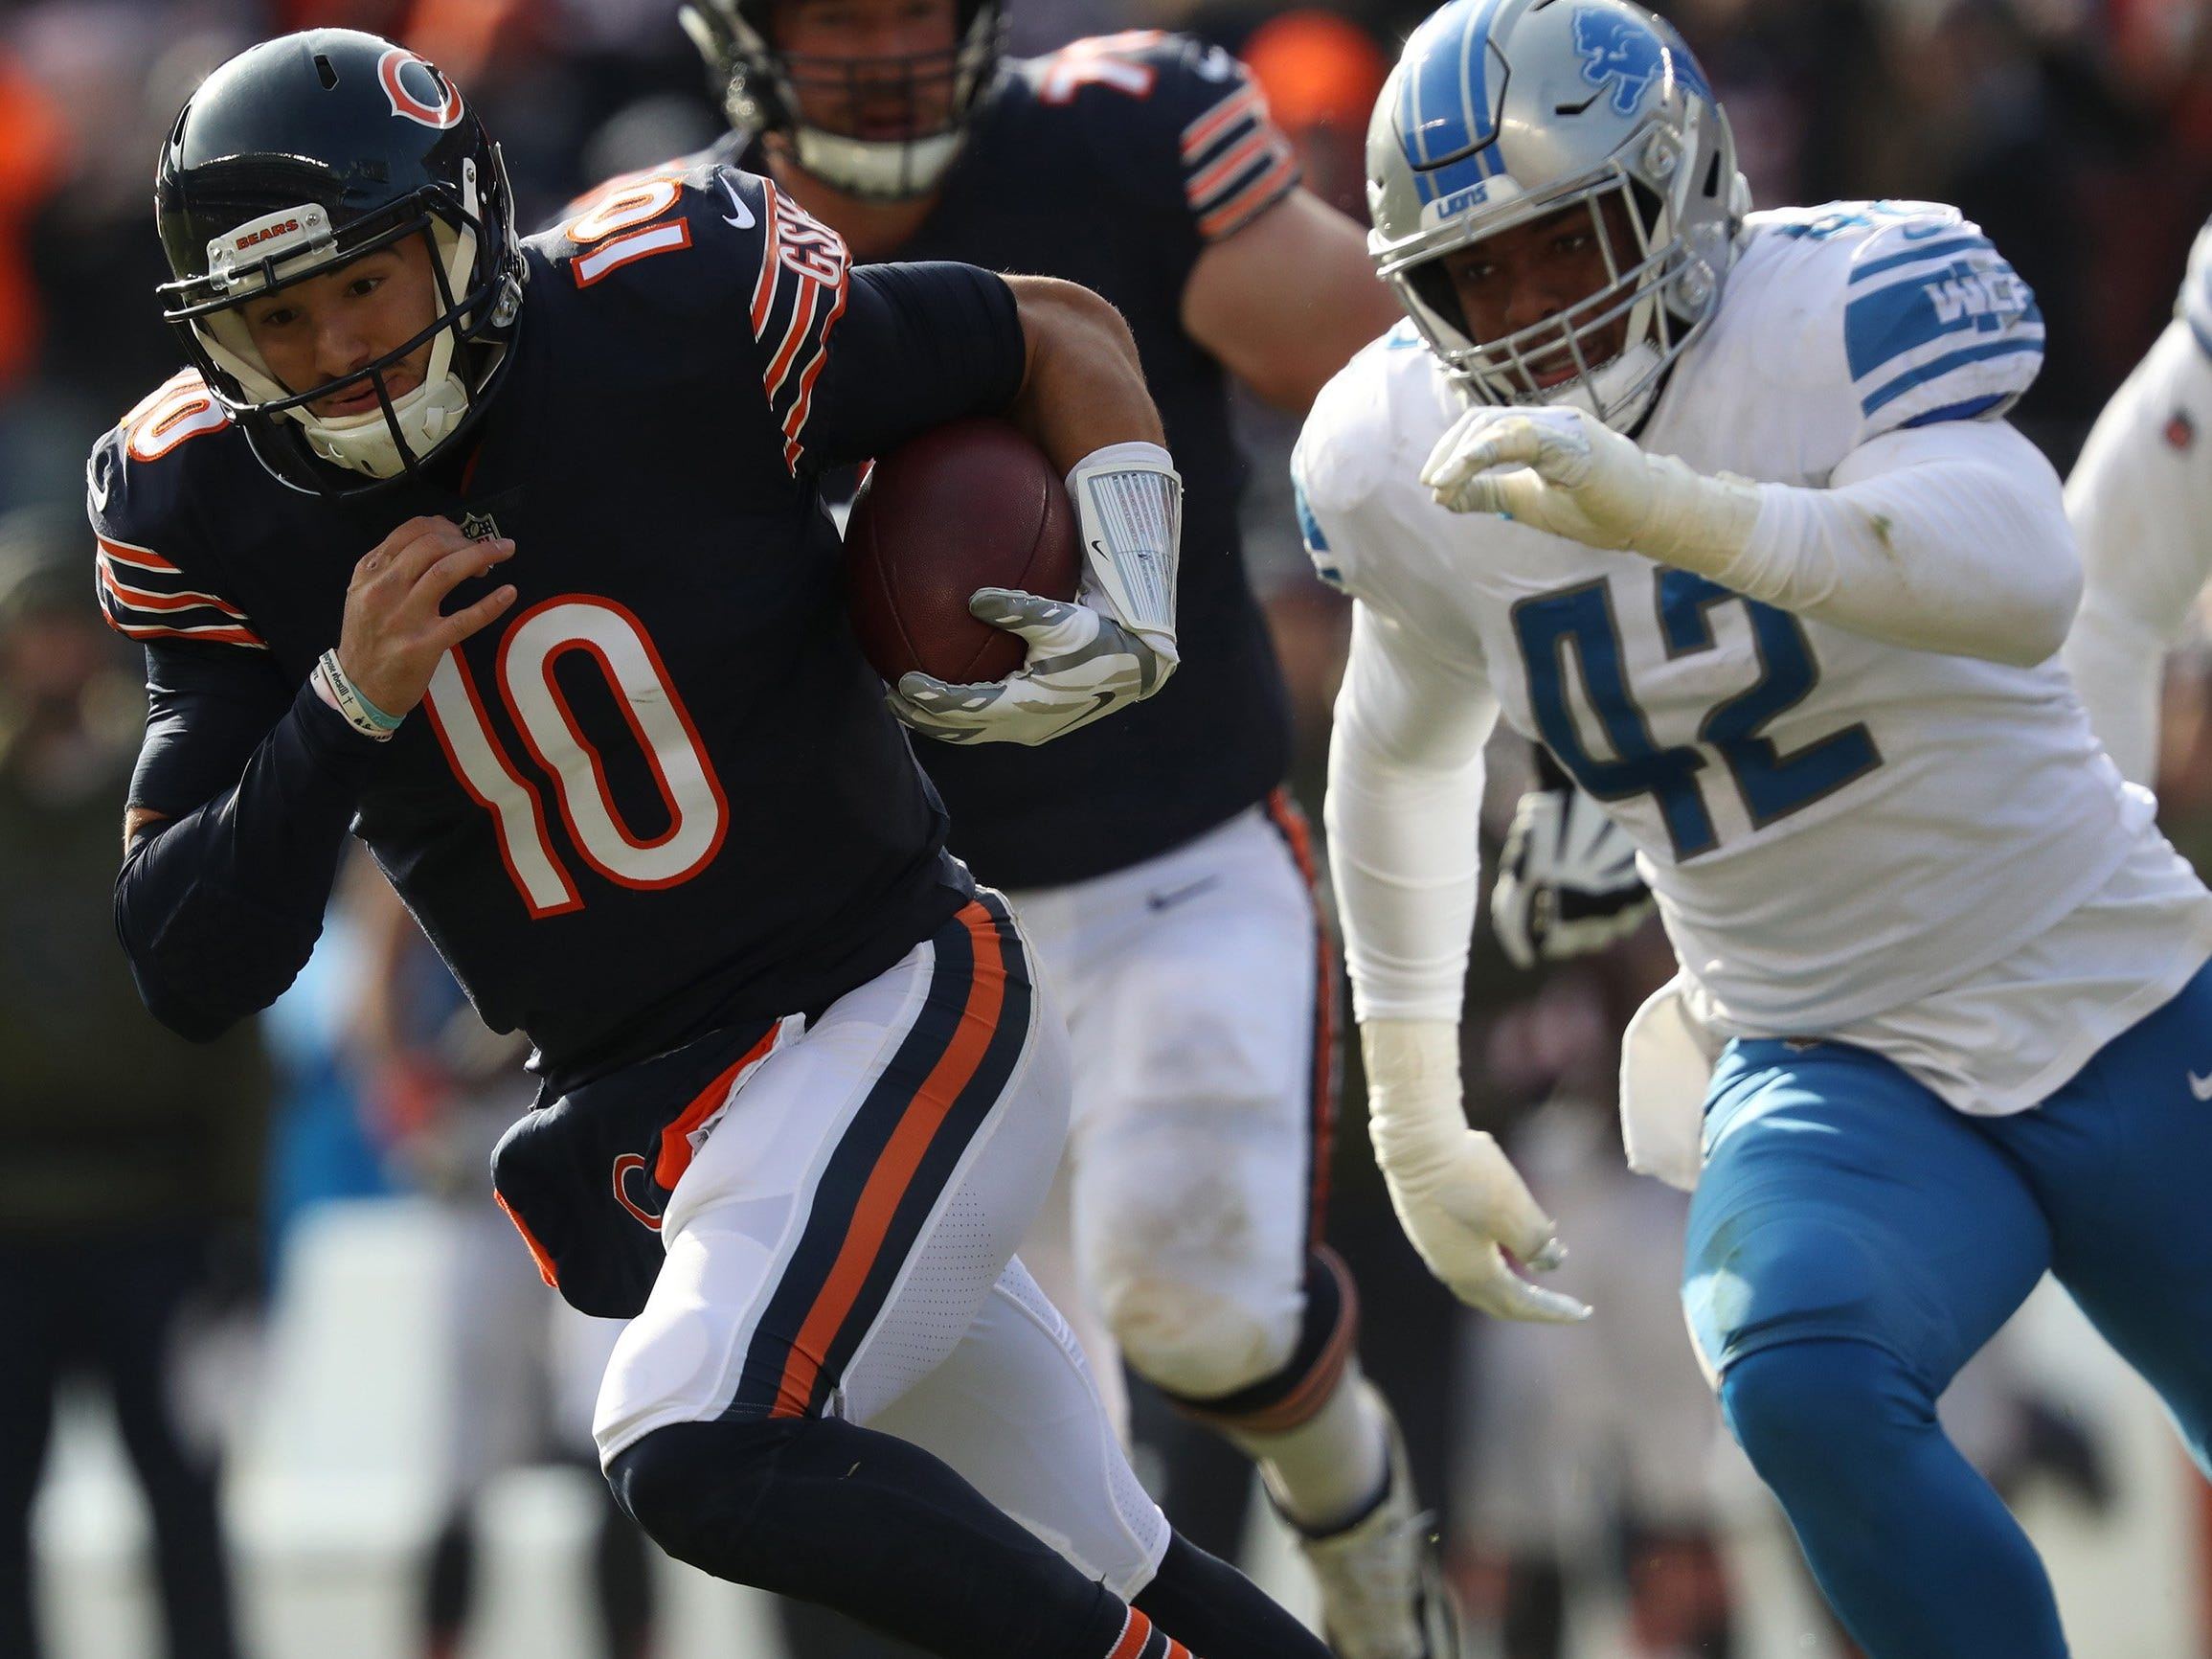 Bears quarterback Mitch Trubisky rushes in the second quarter of the Lions' 34-22 loss on Sunday, Nov. 11, 2018, in Chicago.